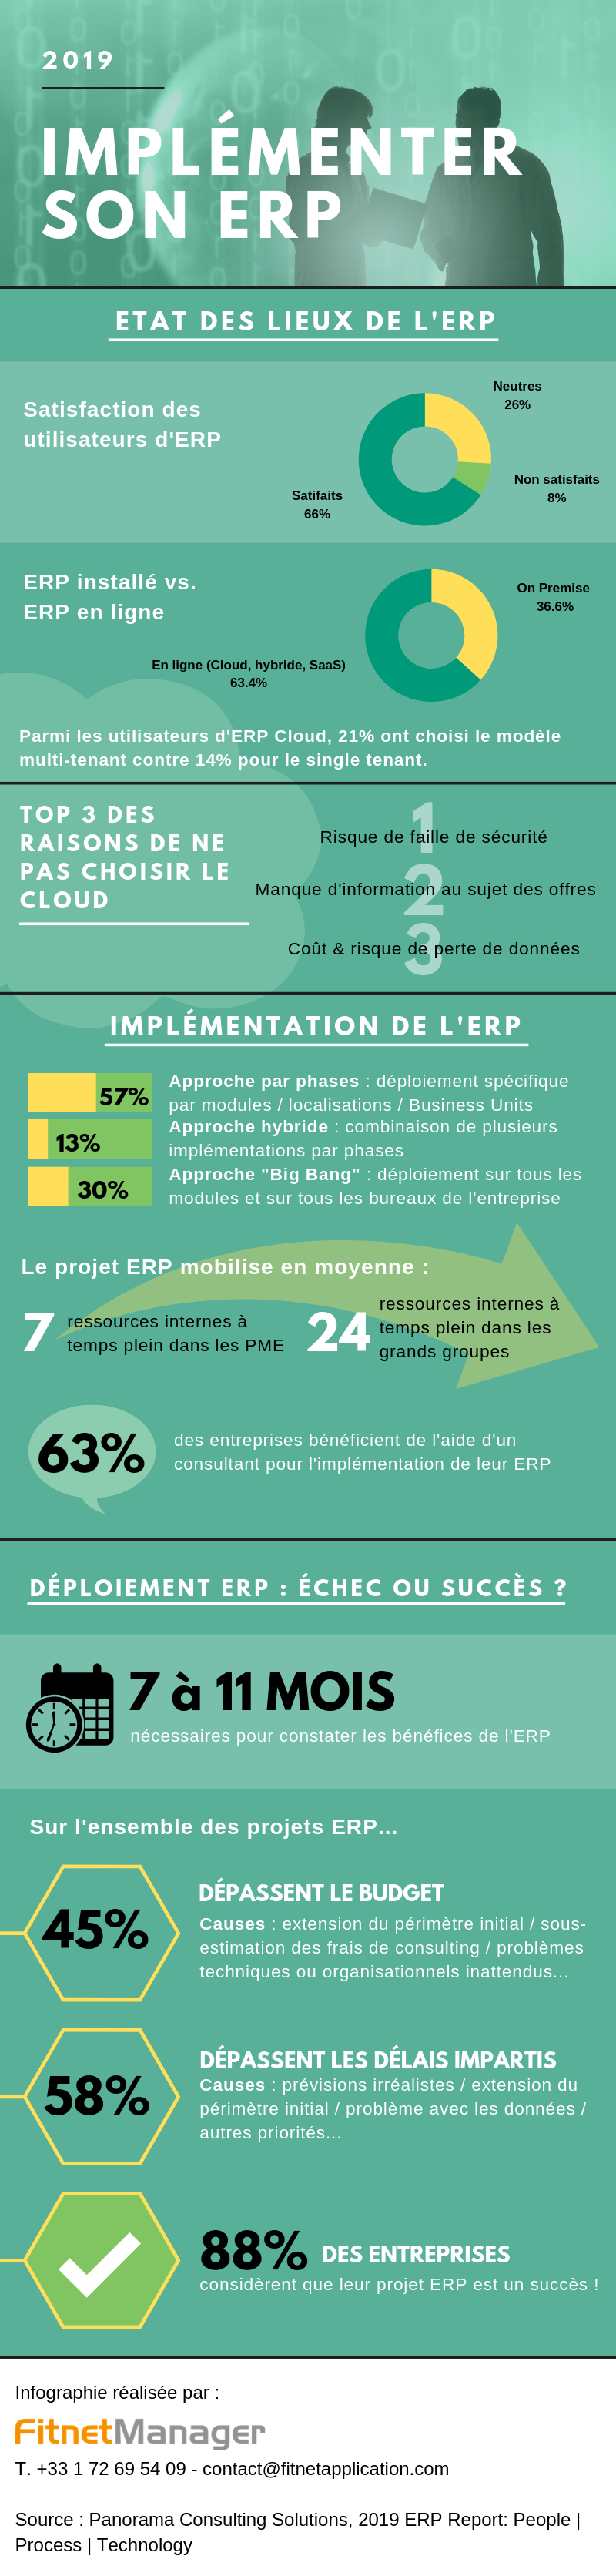 [Infographie] Implémenter son ERP en 2019